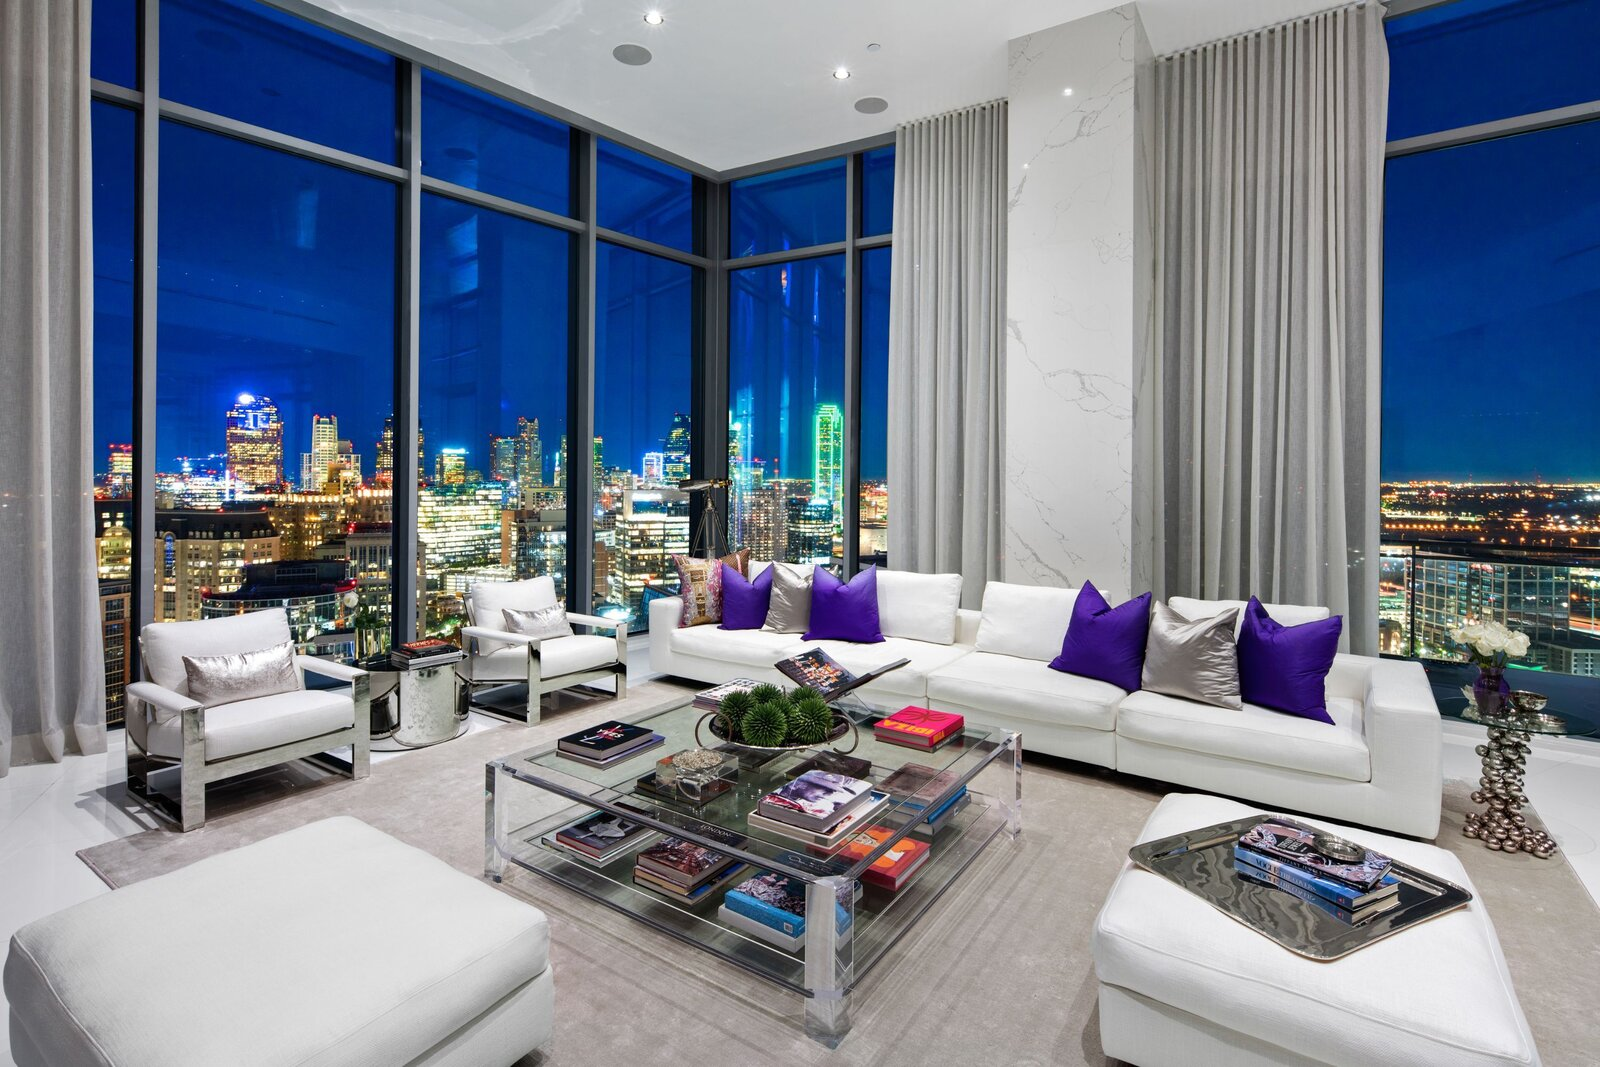 Photo 7 of 10 in An Indoor/Outdoor Penthouse With Downtown Dallas Views Wants $5.7M